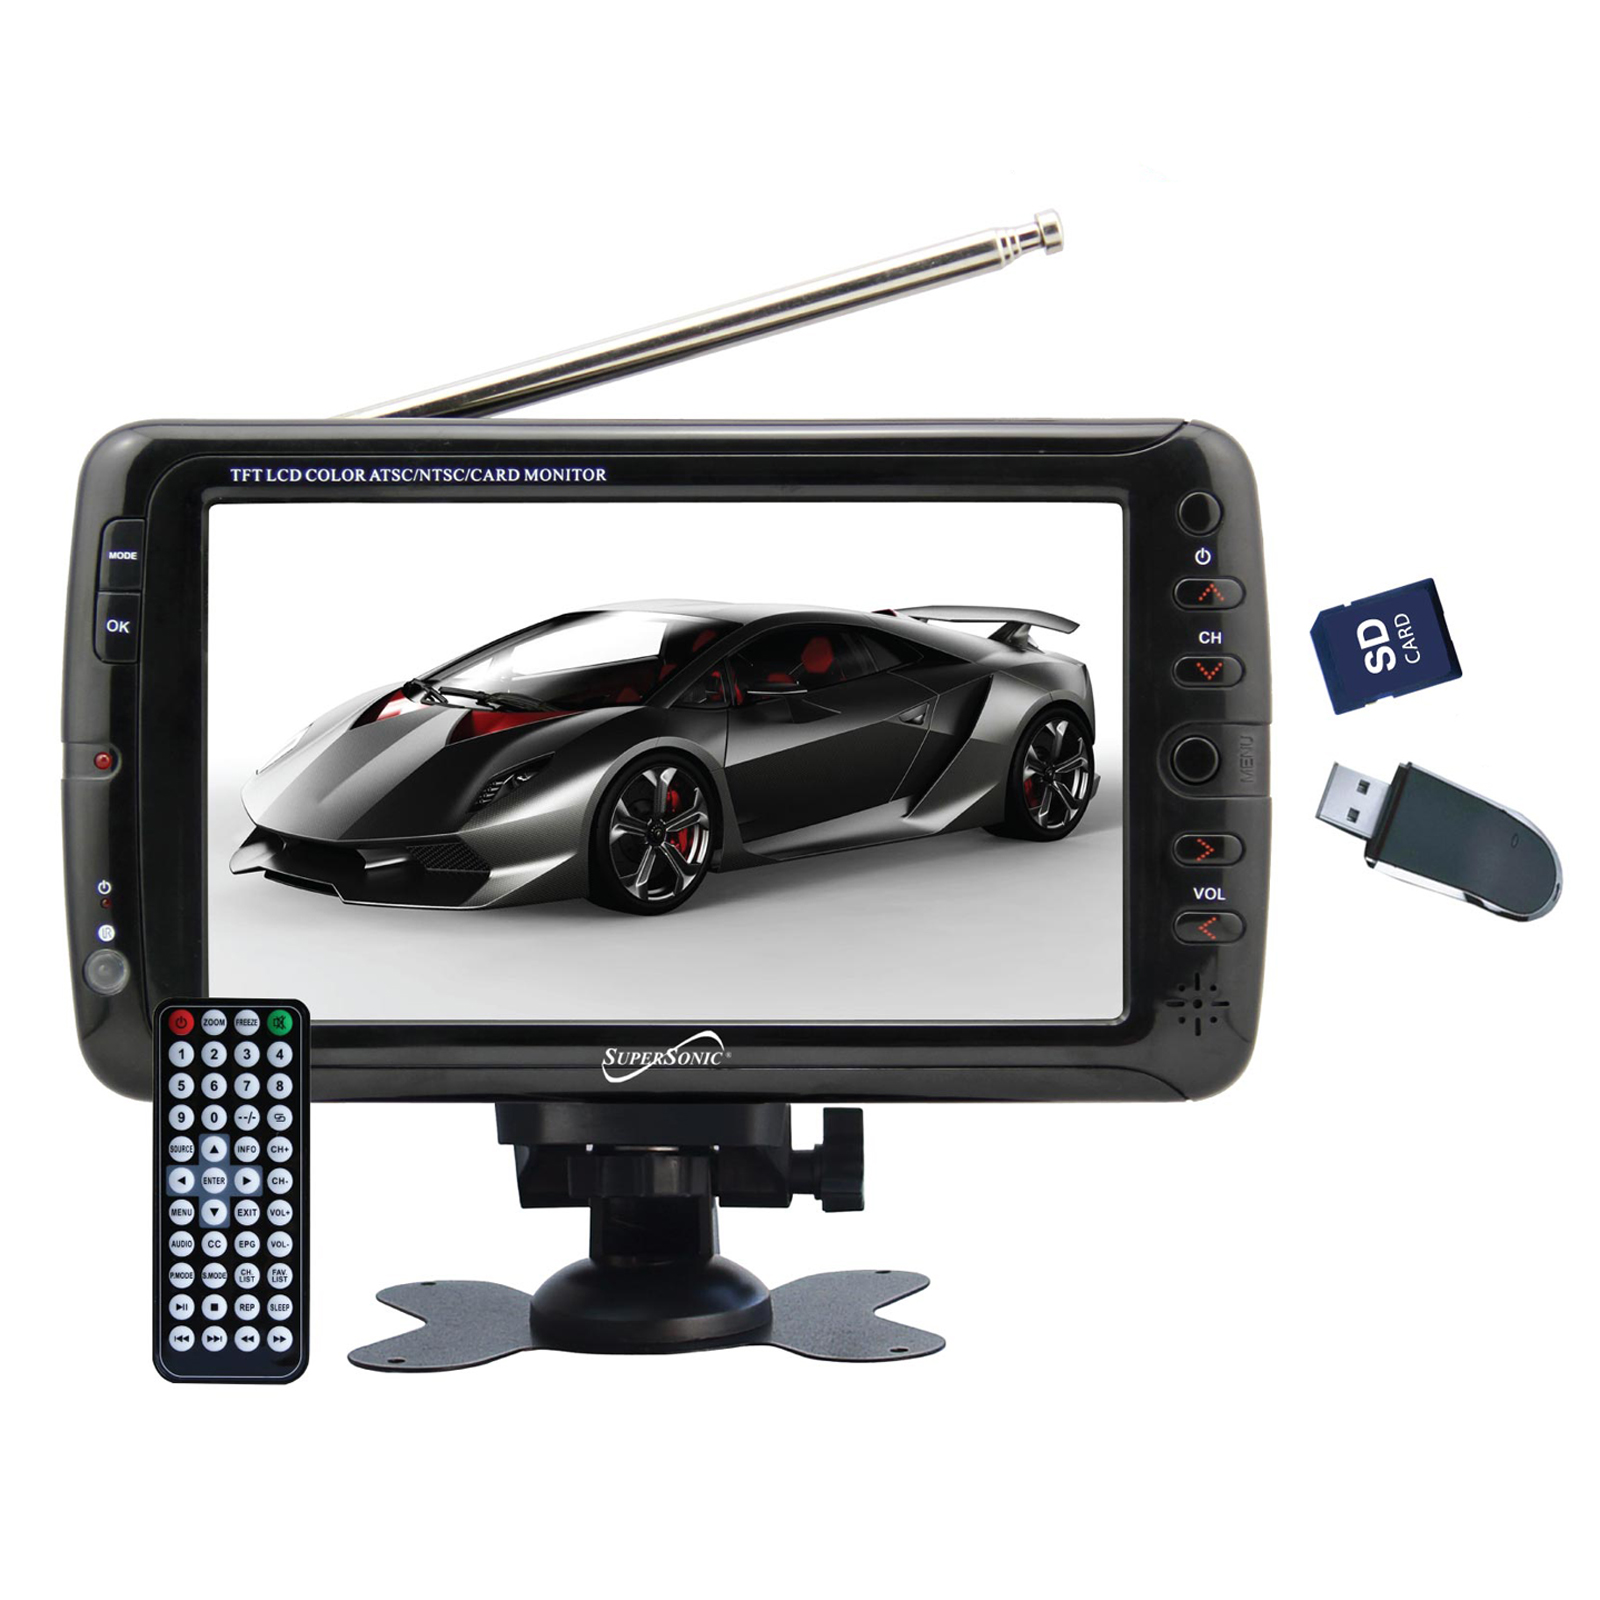 "Supersonic 7"" Portable Rechargeable Digital LCD TV"